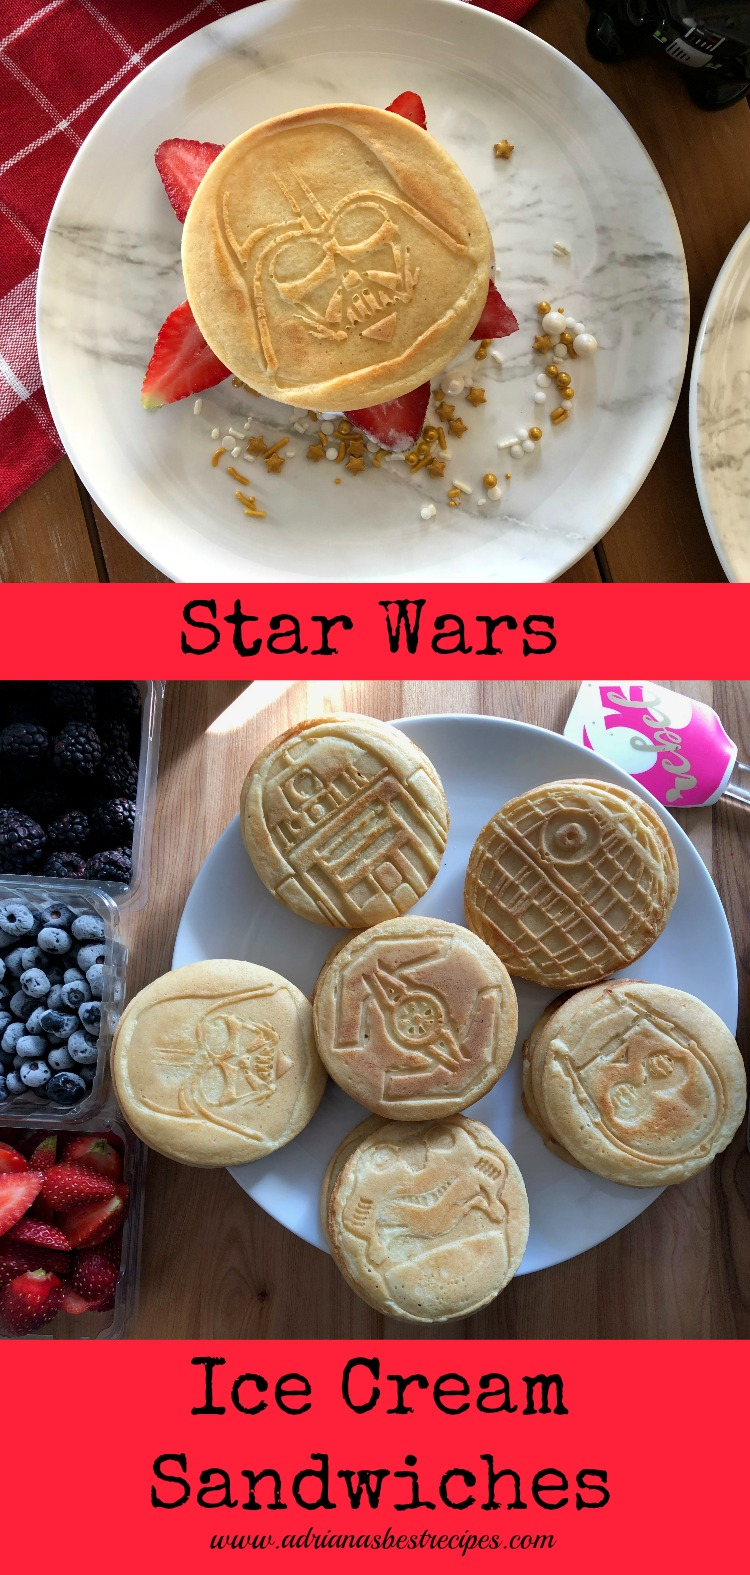 Star Wars Ice Cream Sandwiches